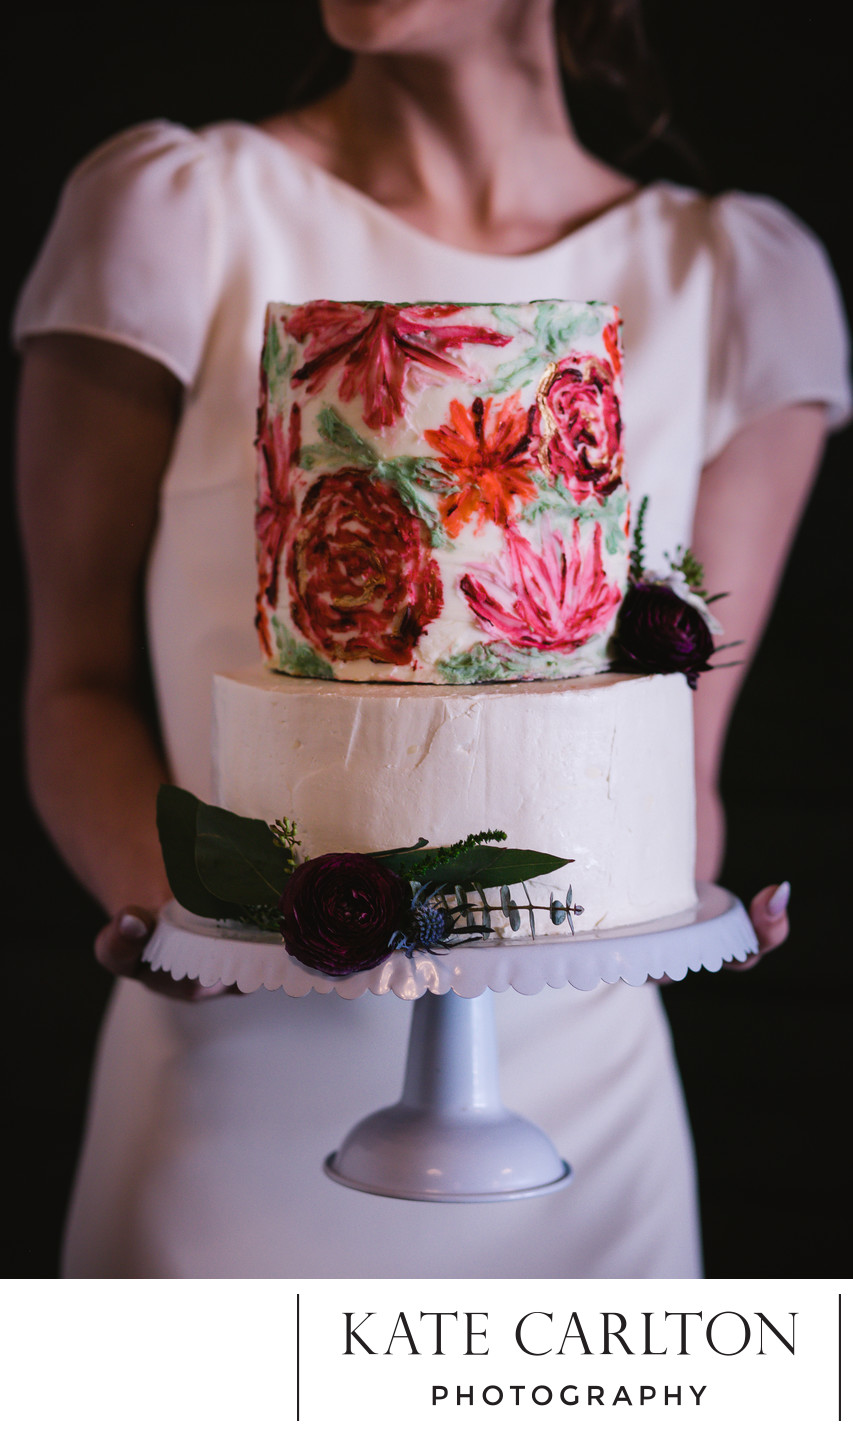 Artistic Wedding Cake Portrait